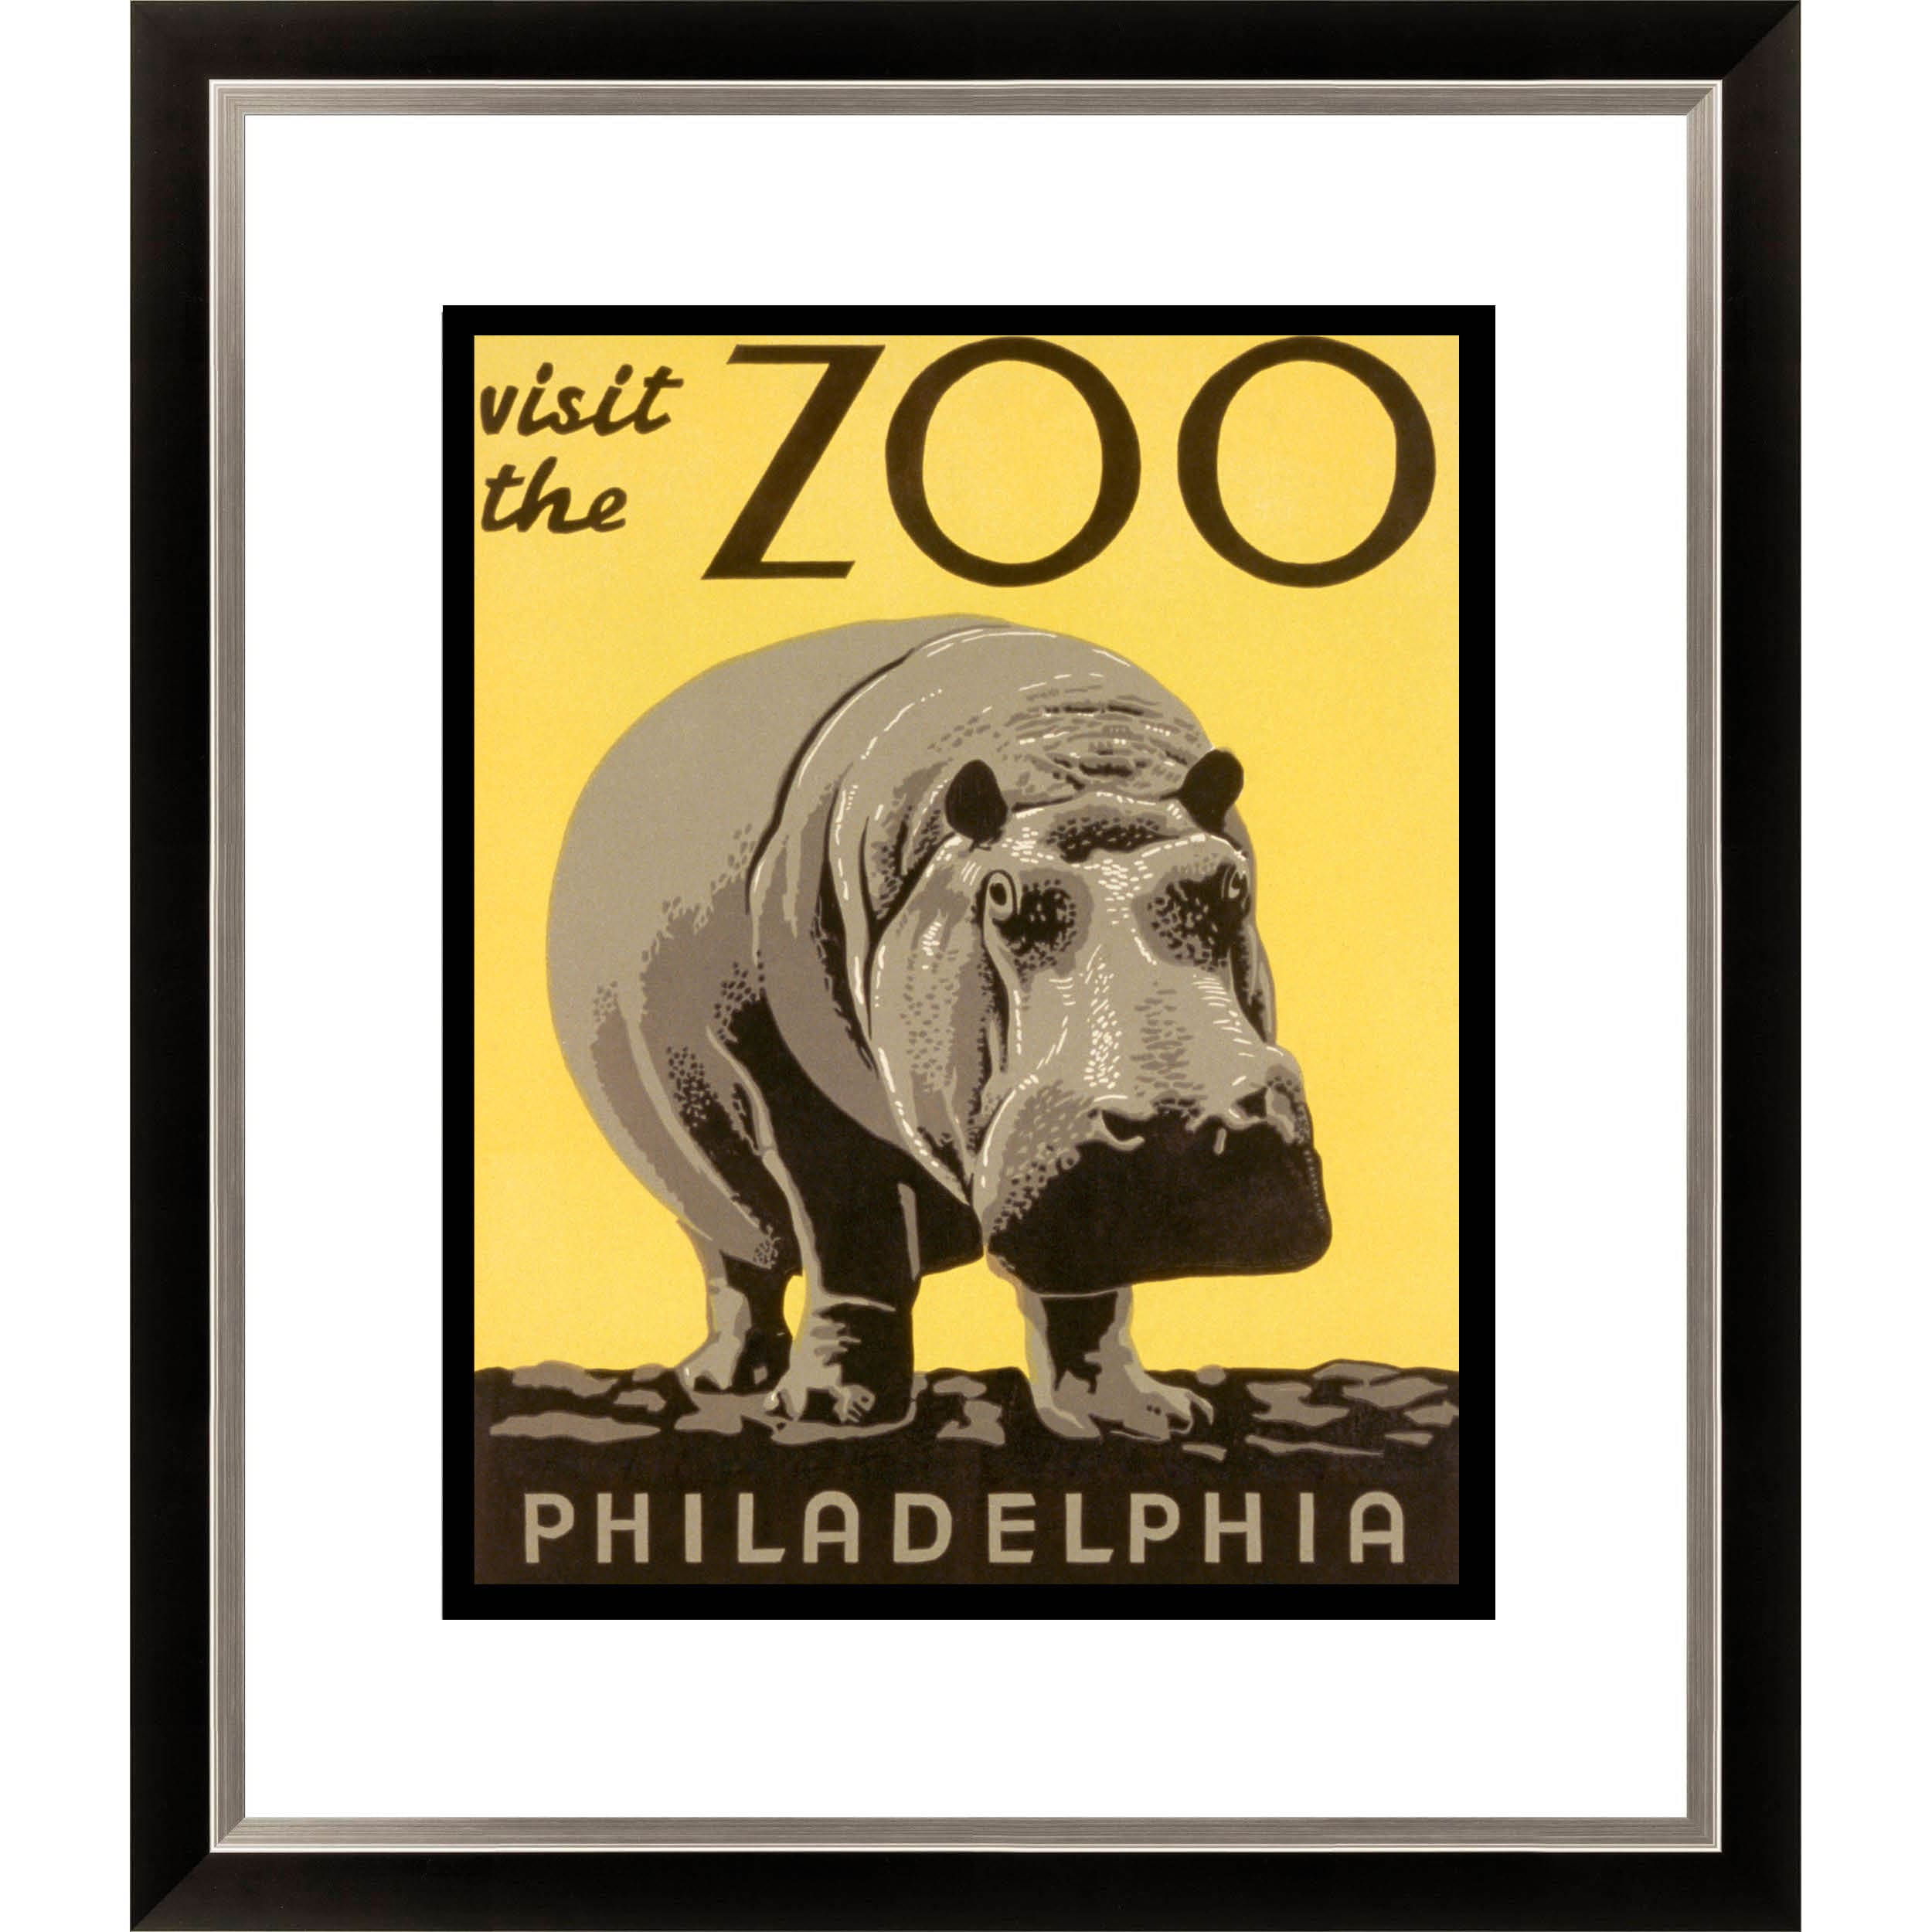 'Visit the Zoo- Philadelphia' Framed Limited Edition Giclee